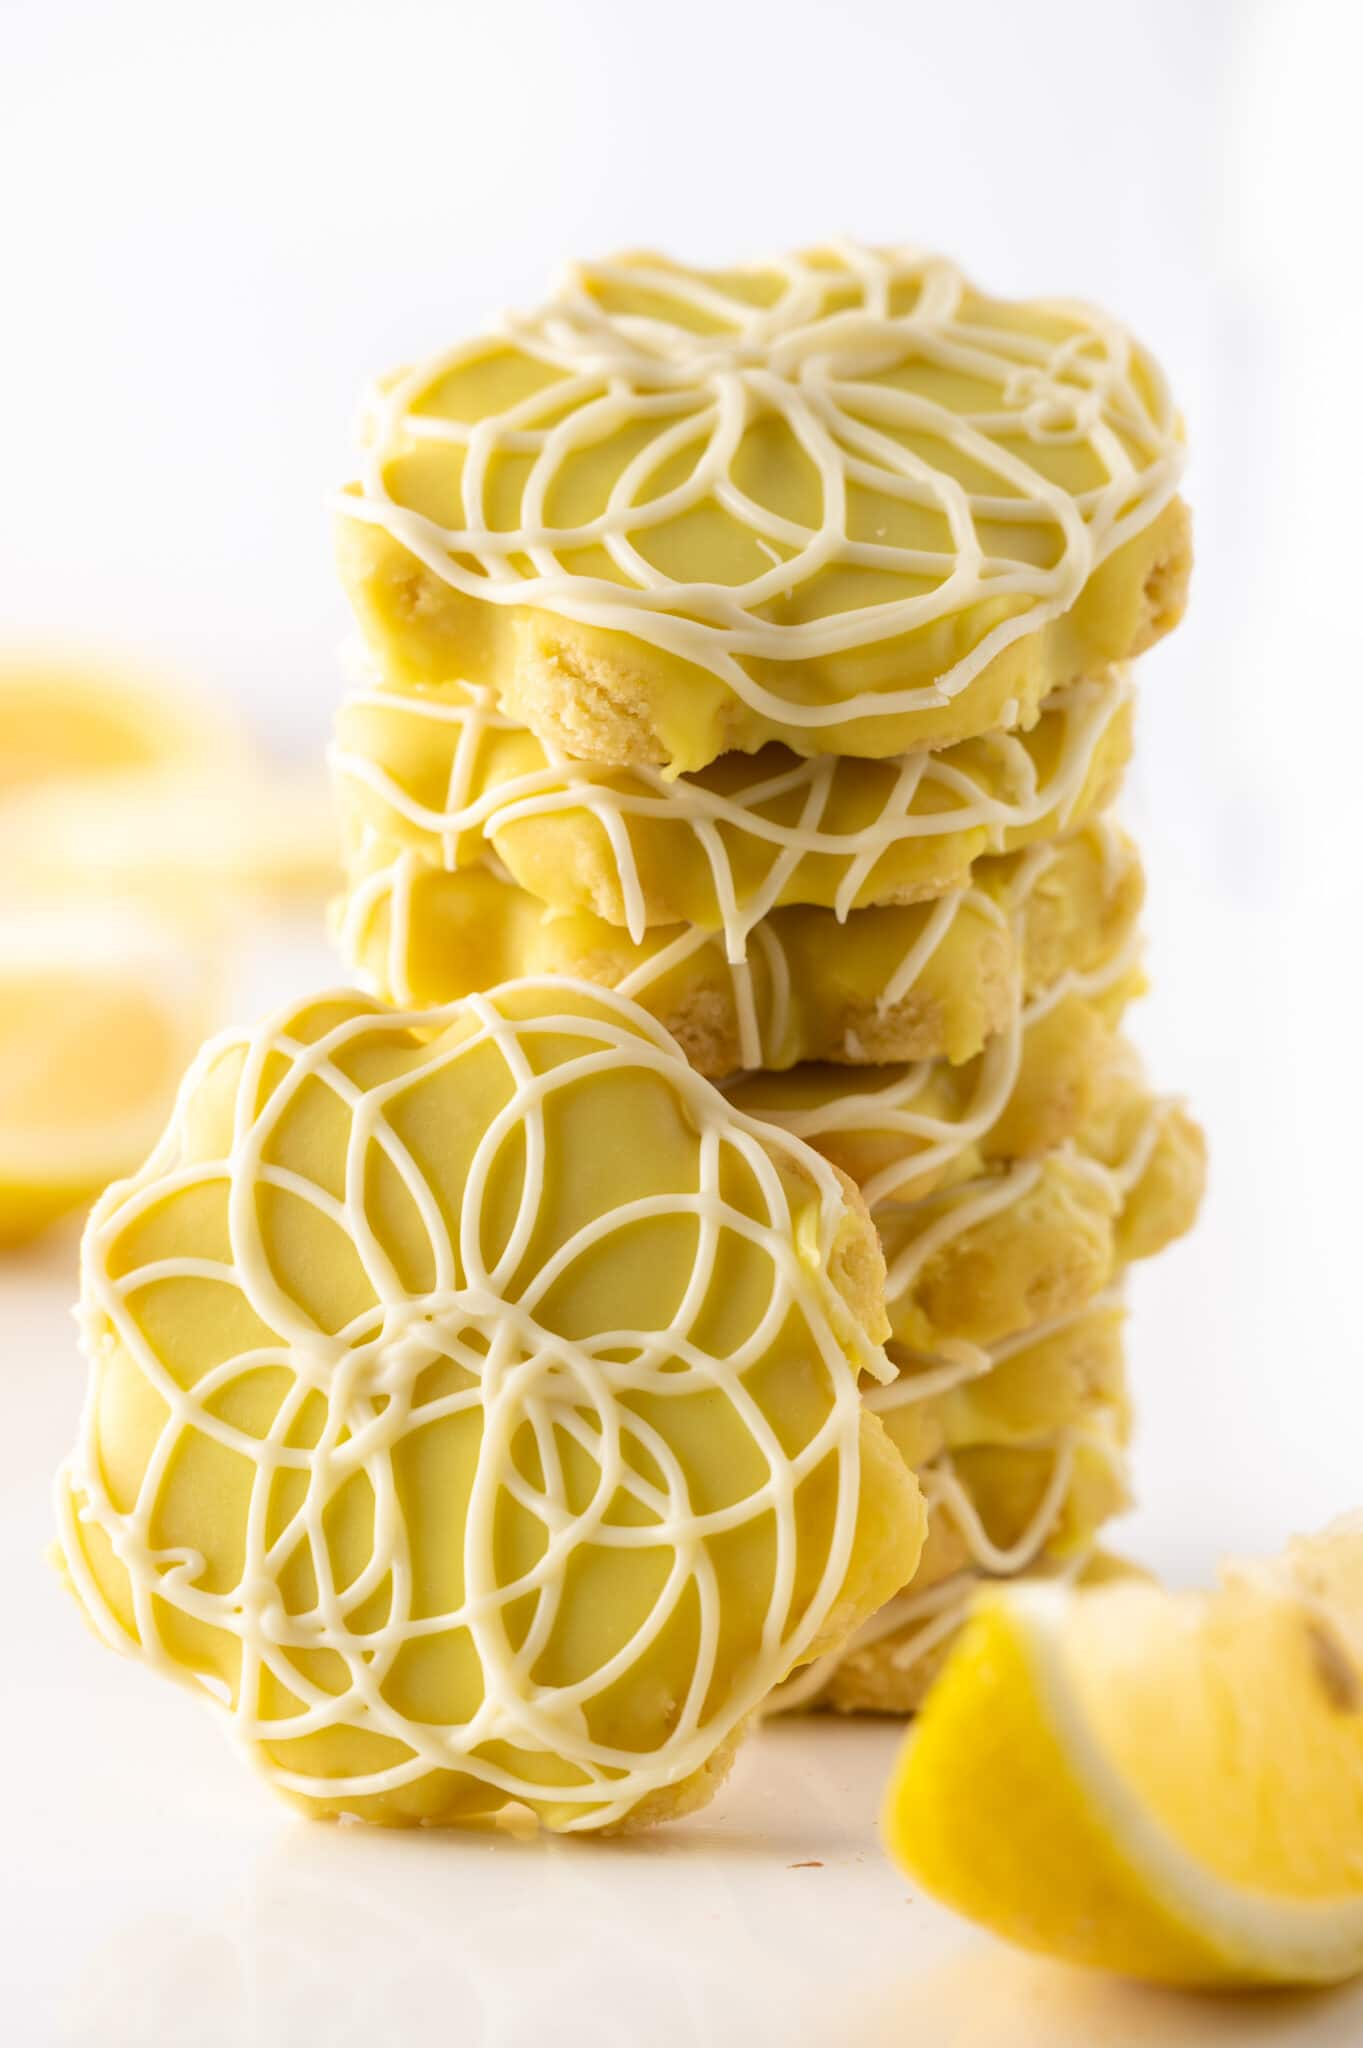 A stack of low carb lemon cookies on againss a bright white background.